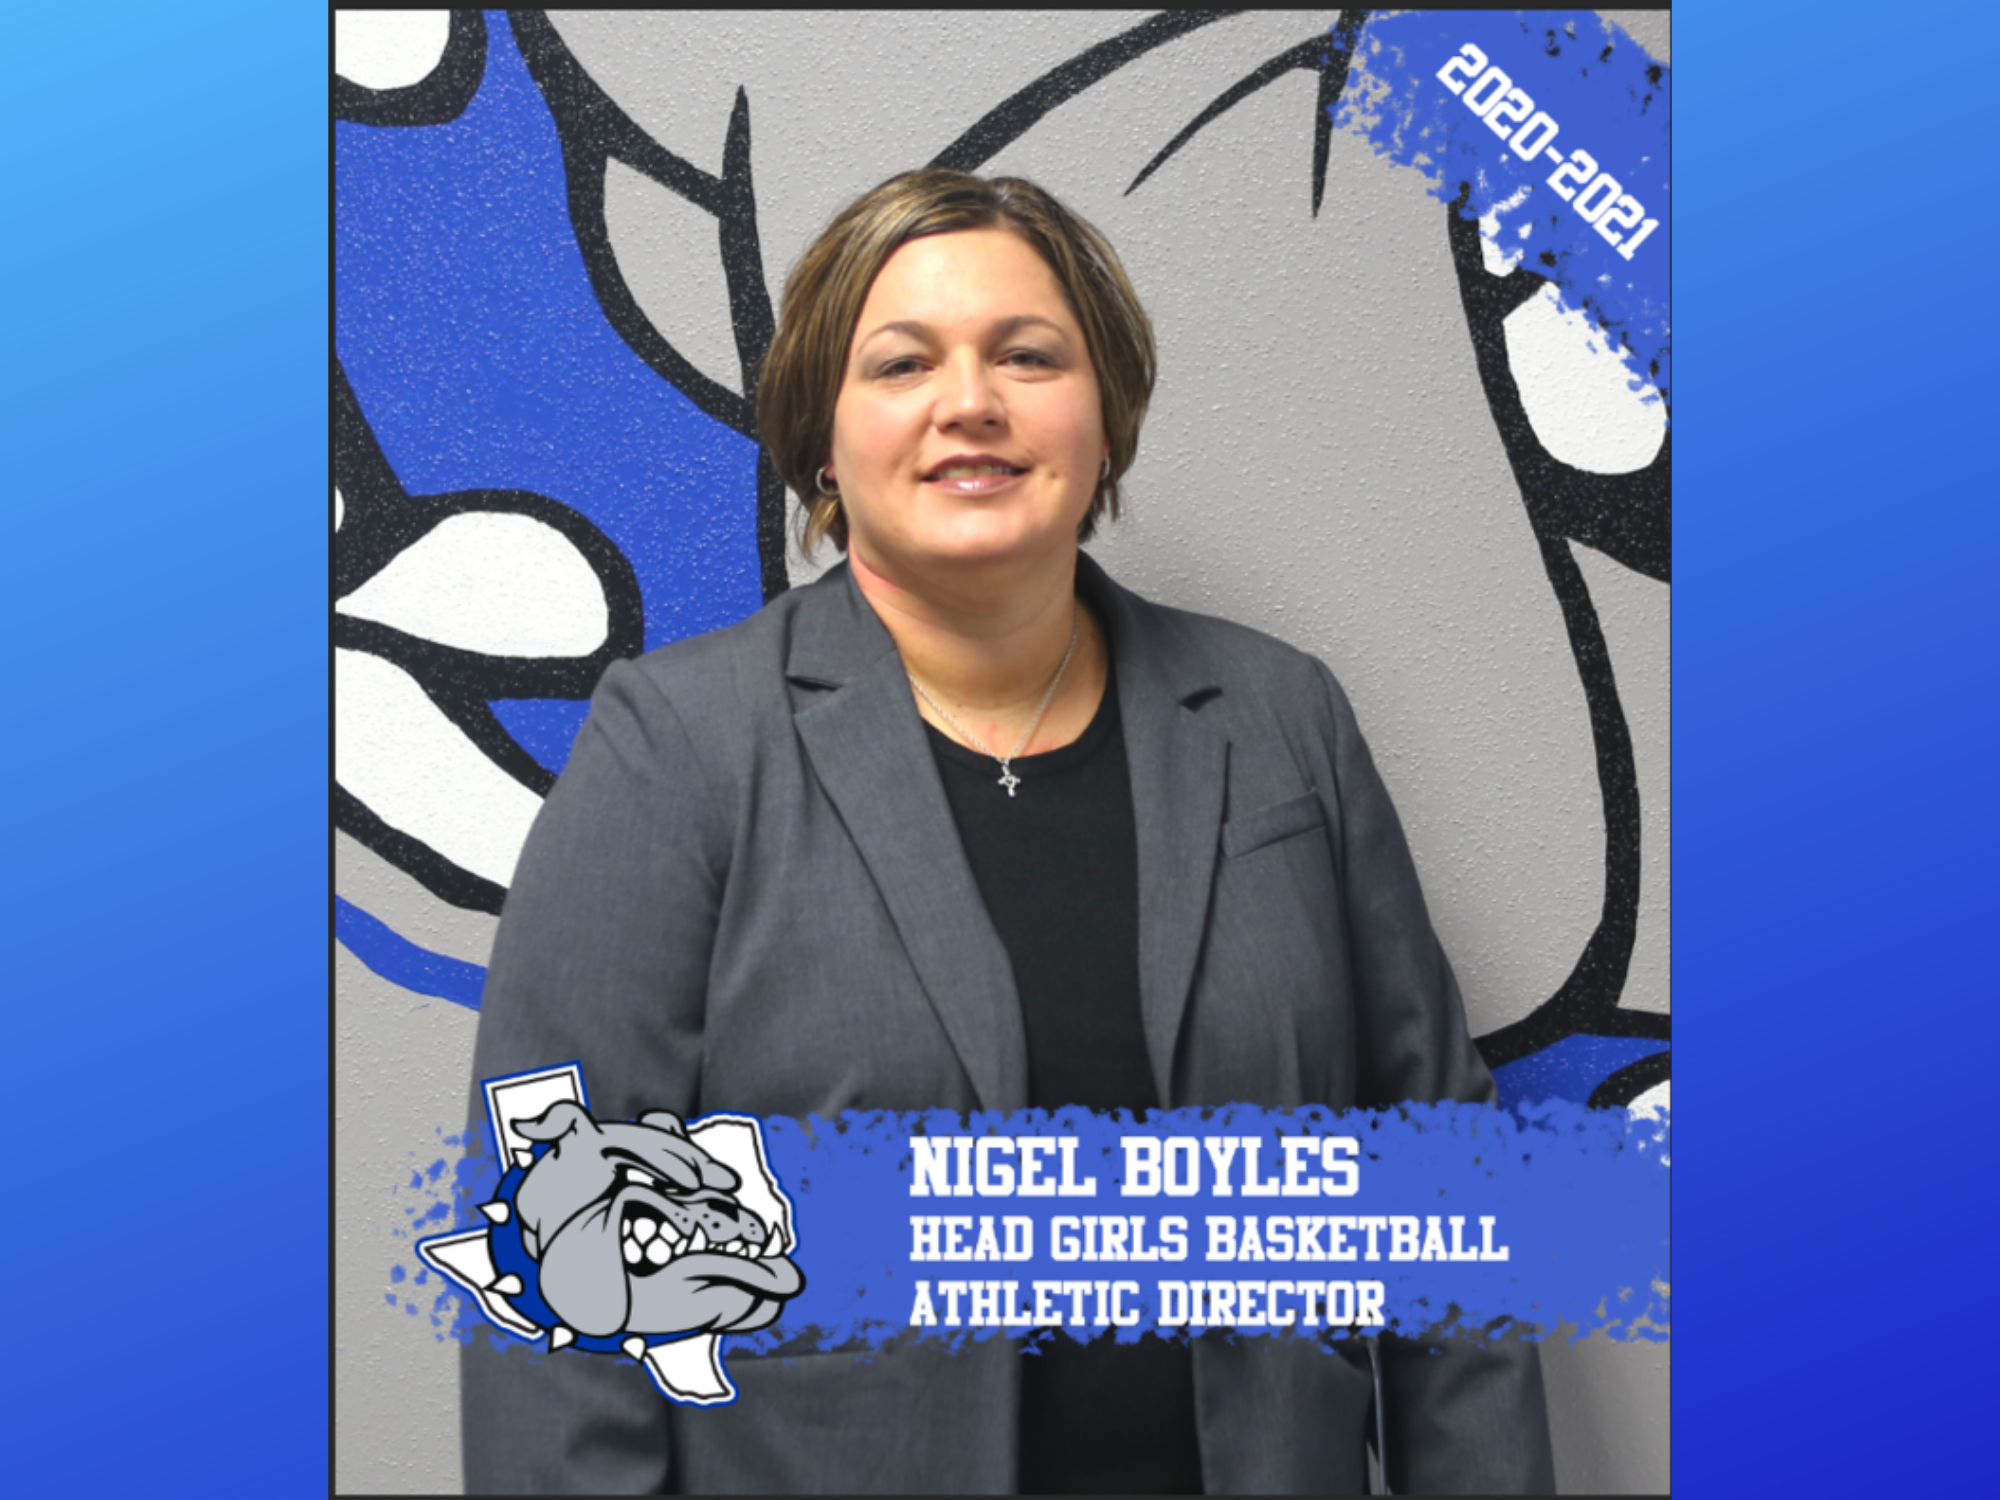 Athletic Director's photo